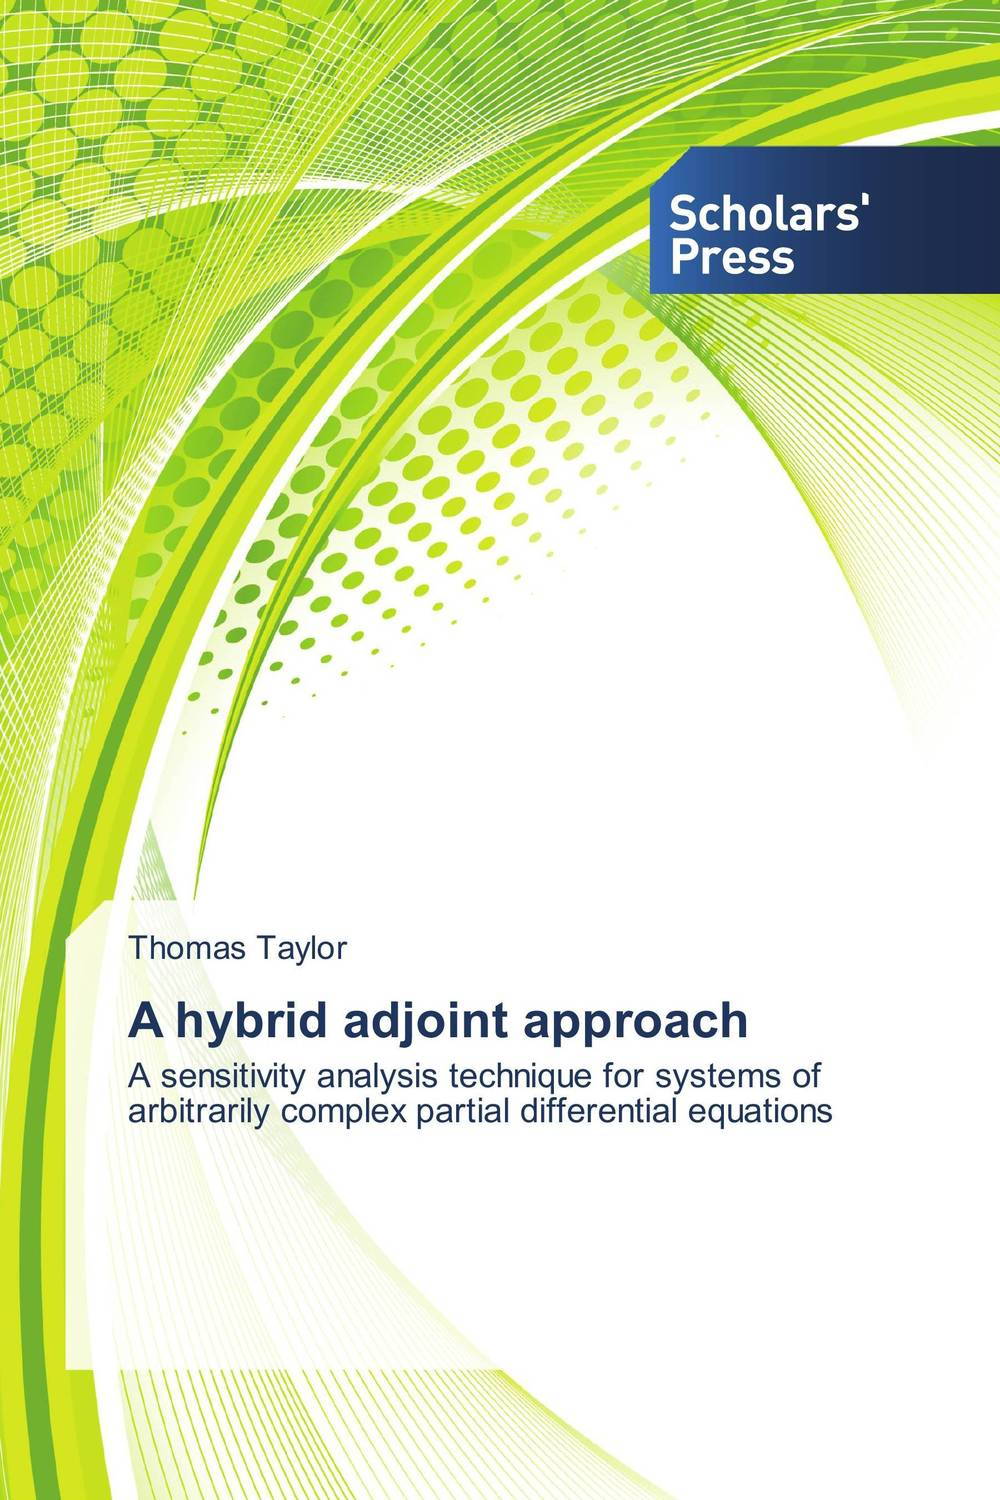 A hybrid adjoint approach belousov a security features of banknotes and other documents methods of authentication manual денежные билеты бланки ценных бумаг и документов